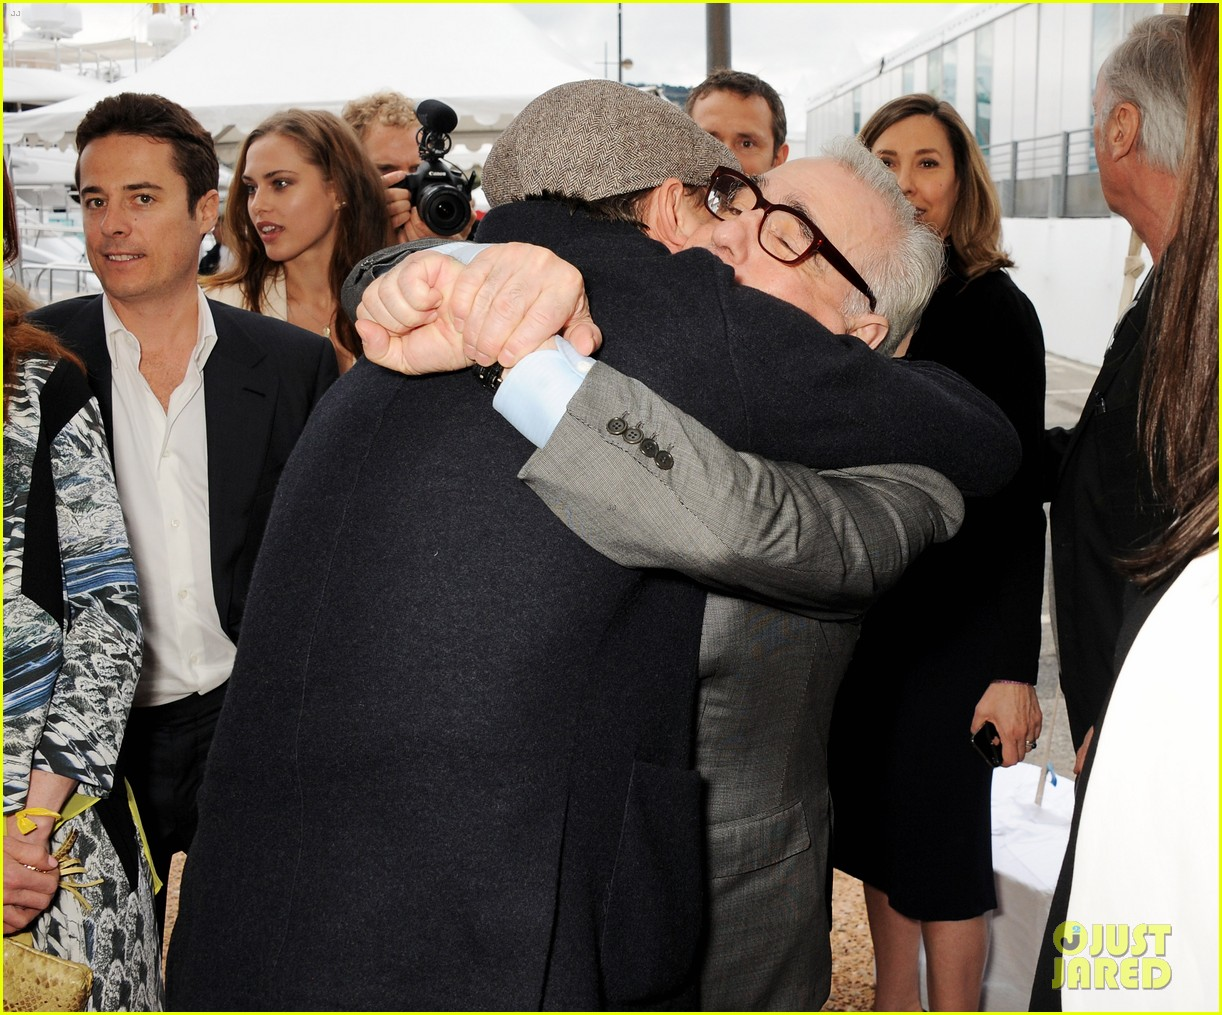 leonardo dicaprio martin scorsese big hug at cannes event 03